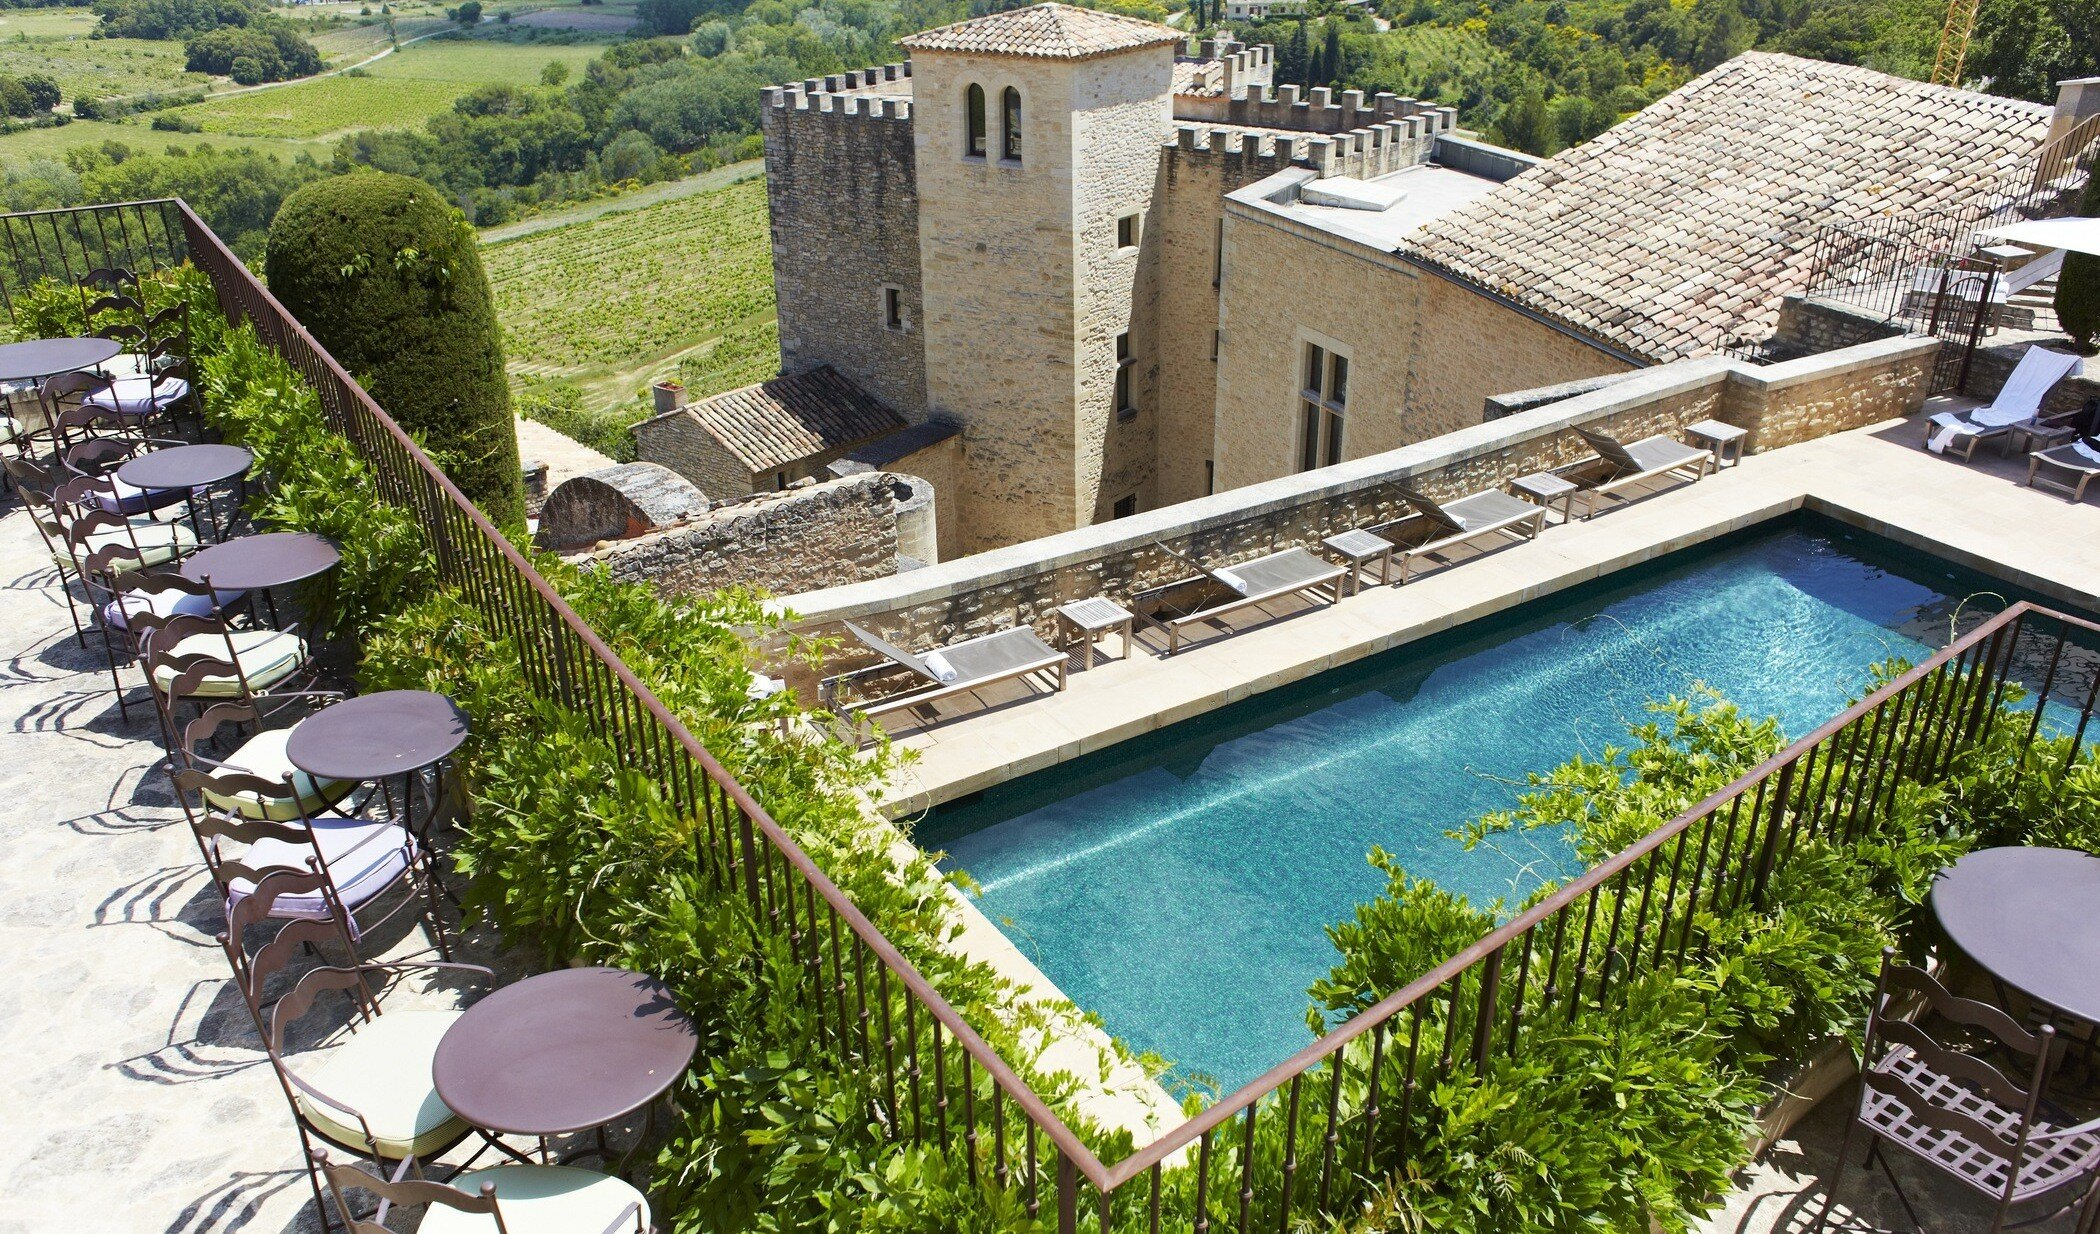 Hotel Crillon le Brave voted 4th in Travellers Choice top hotels indoor swimming pool